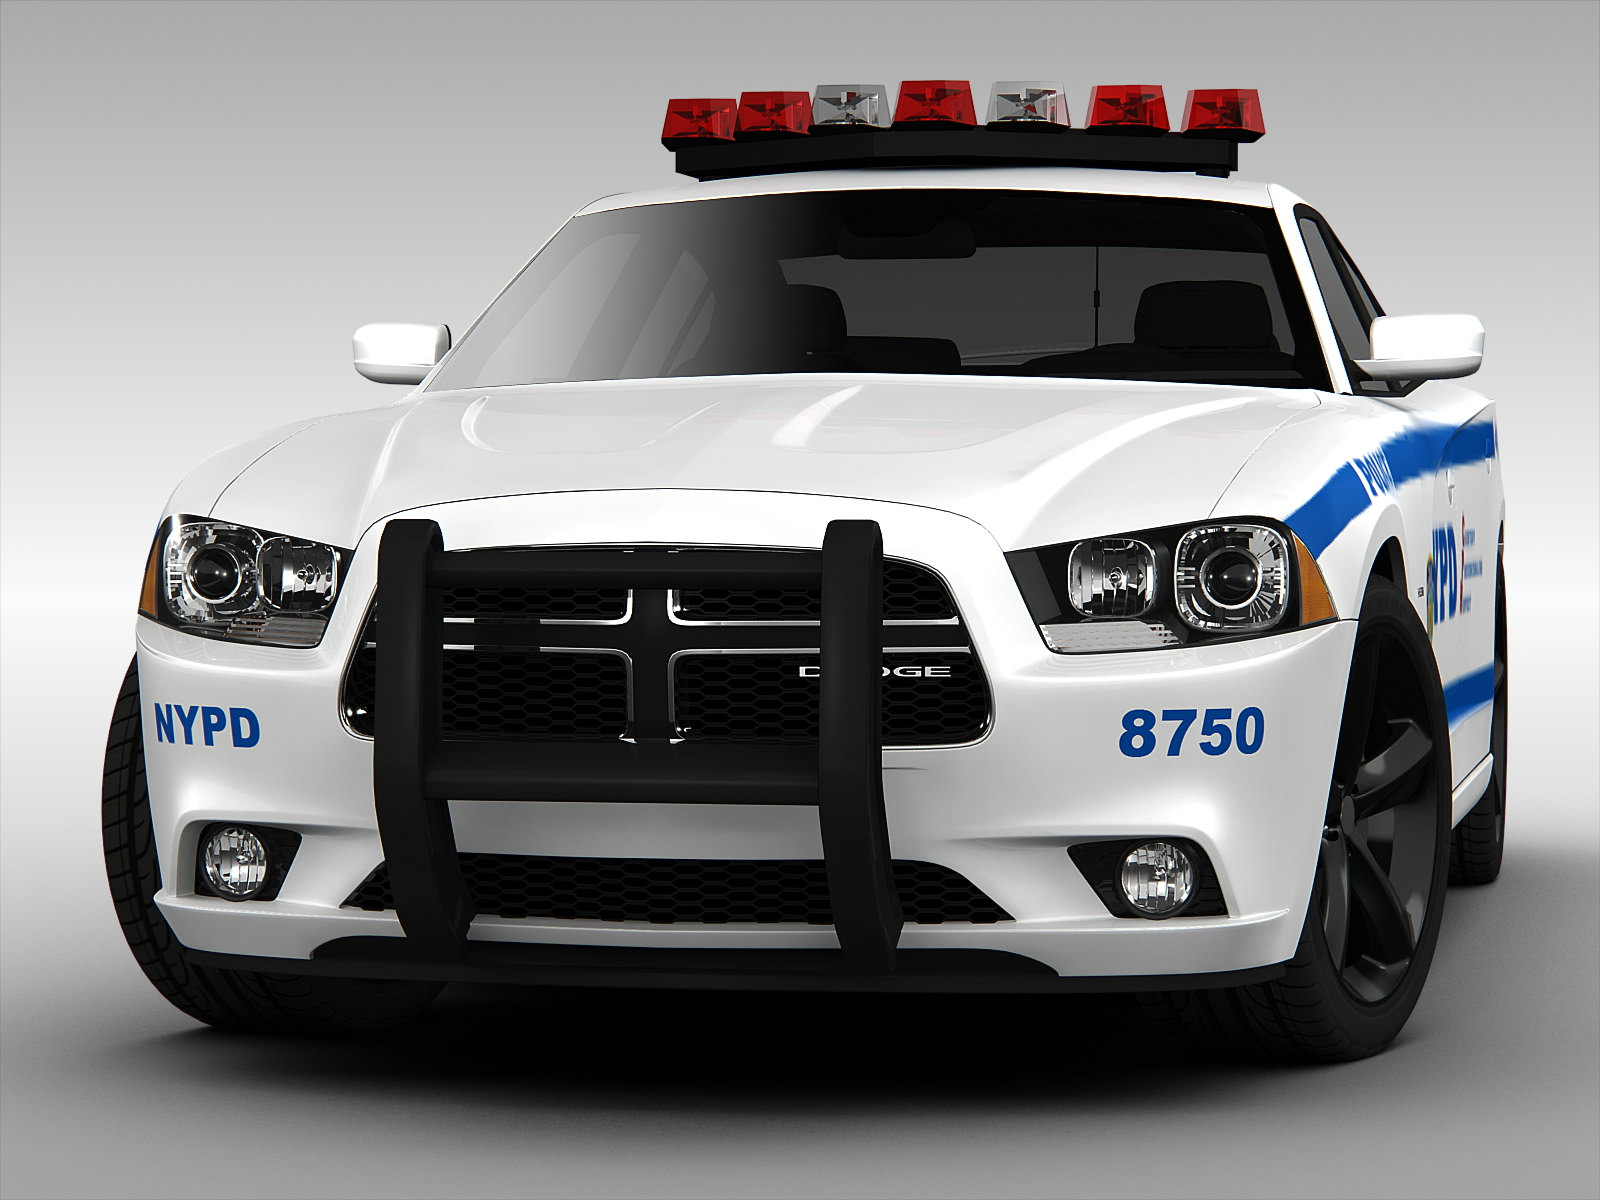 dodge charger nypd police car 2013 3D Models - CGTrader.com